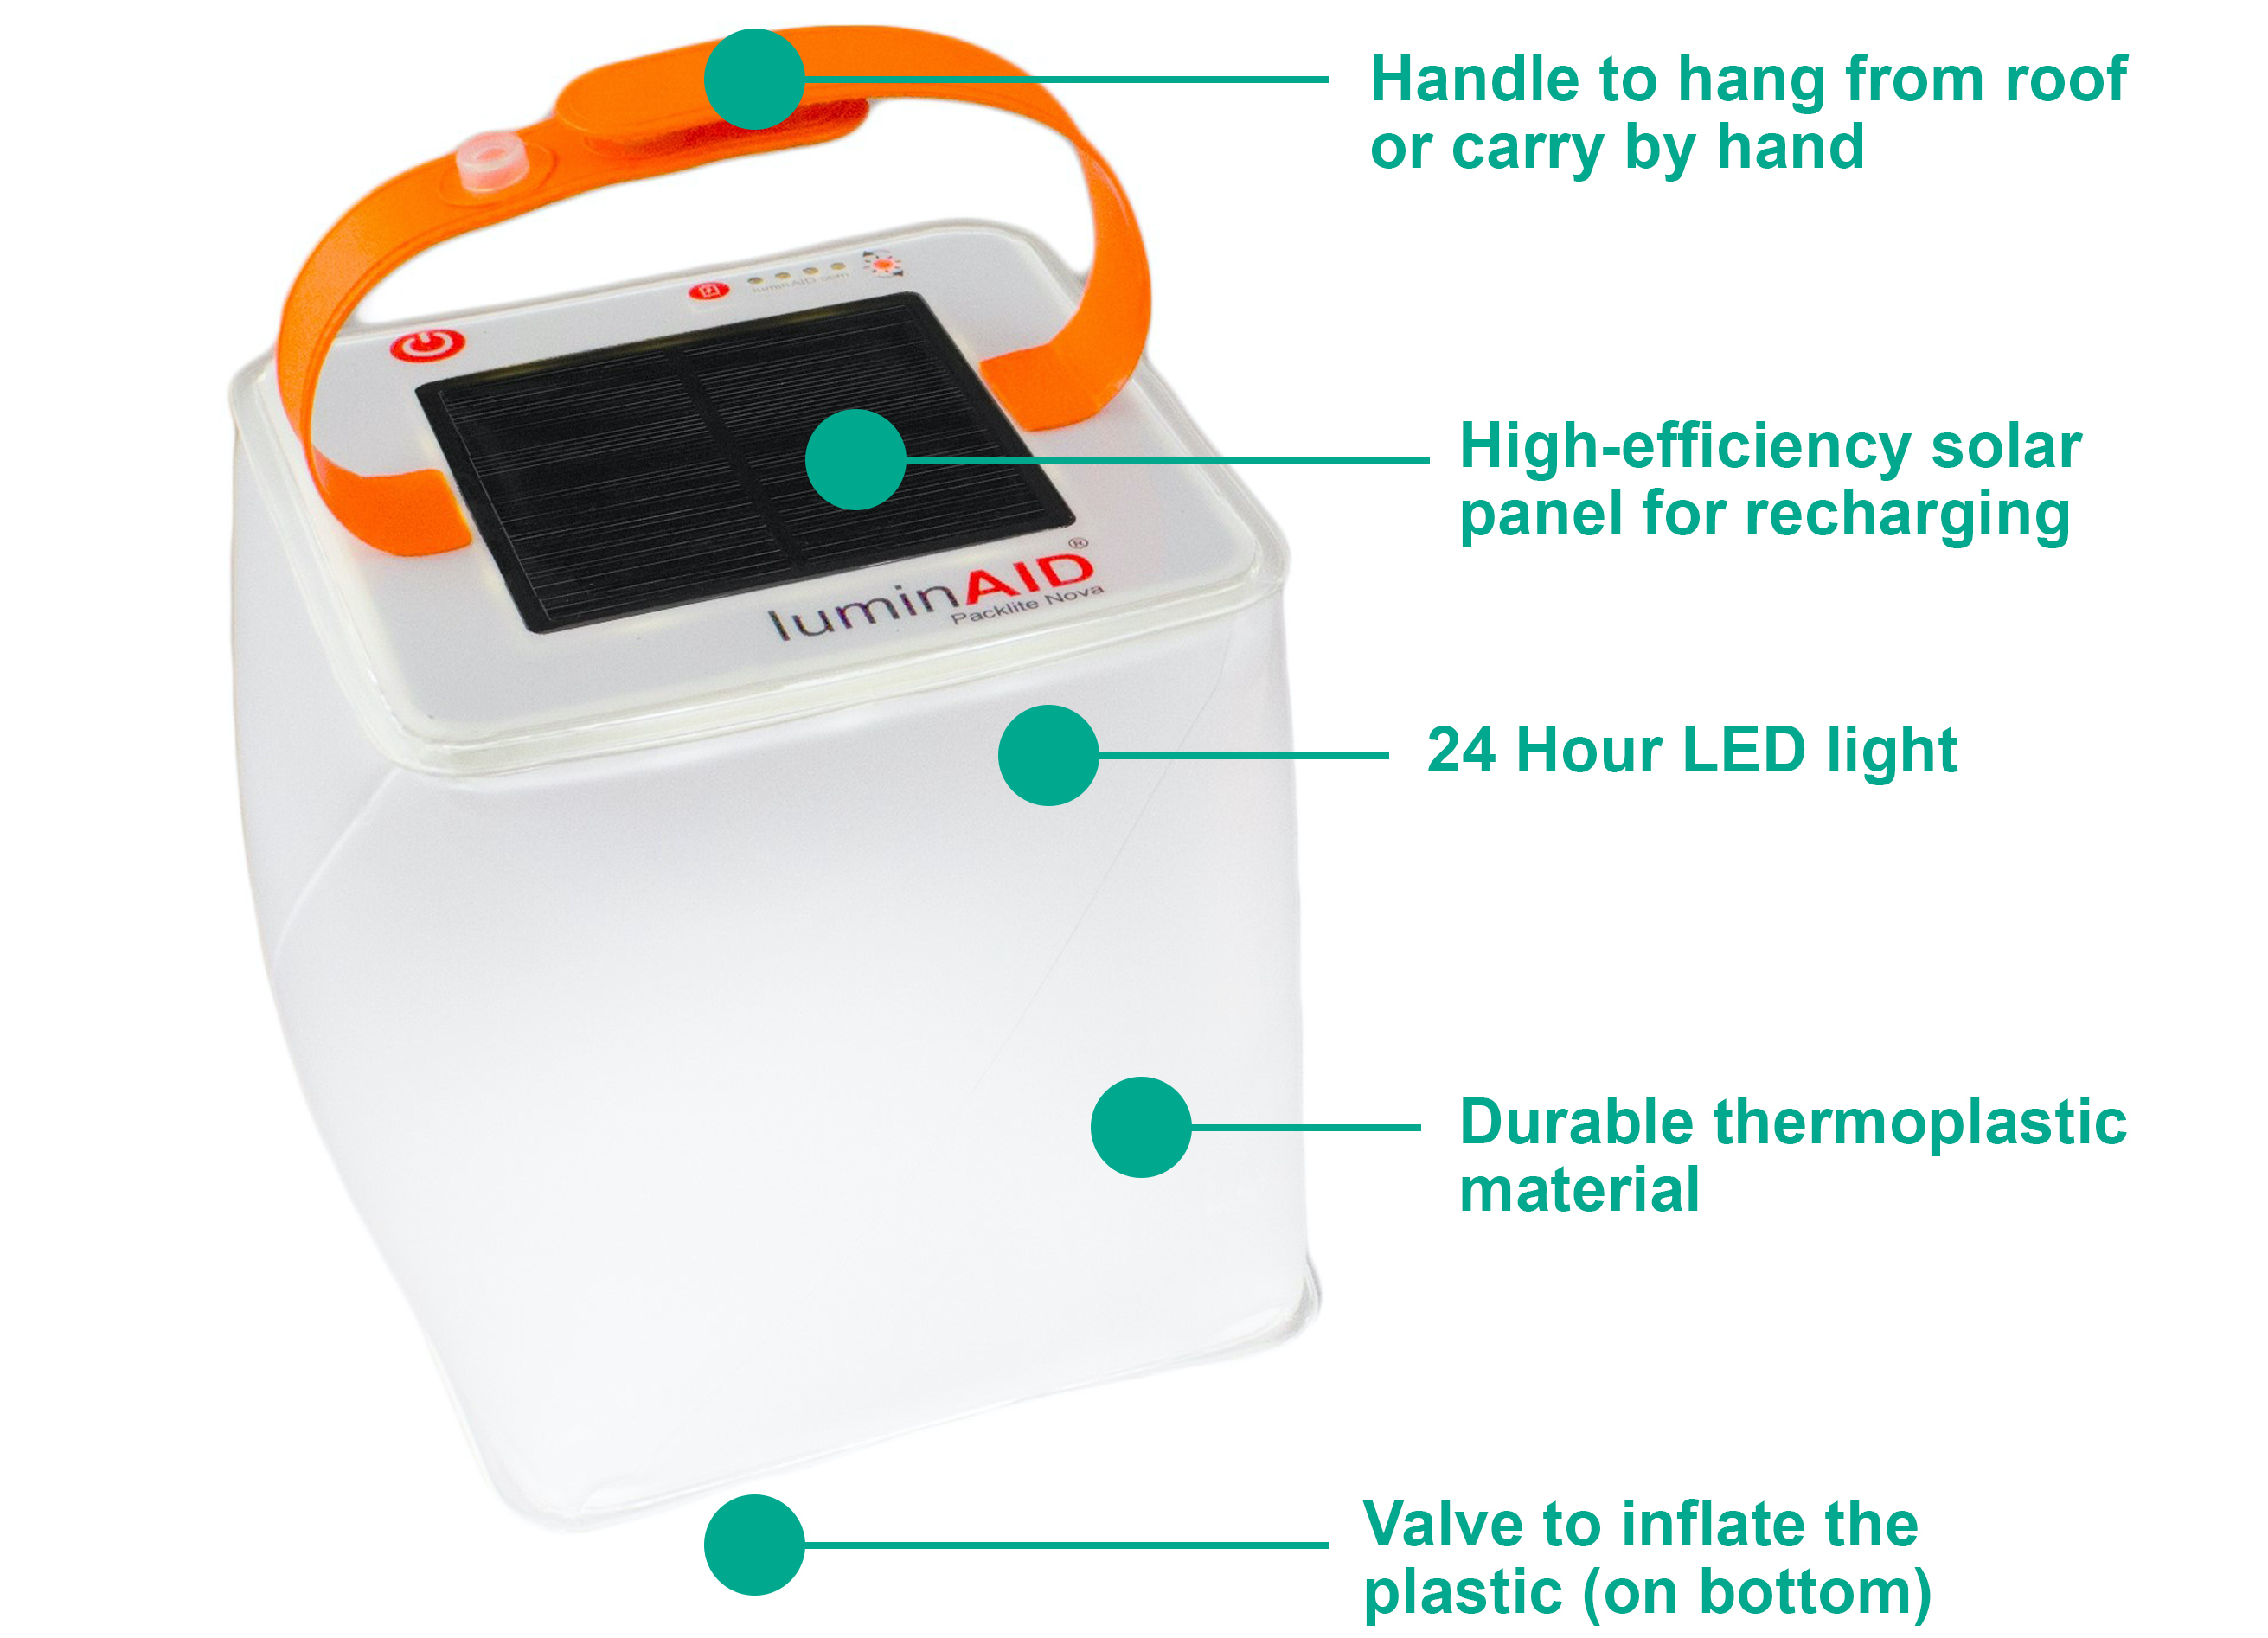 ShelterBox - LuminAid Solar Light Diagram showing 24 hour battery, handles, and solar panels